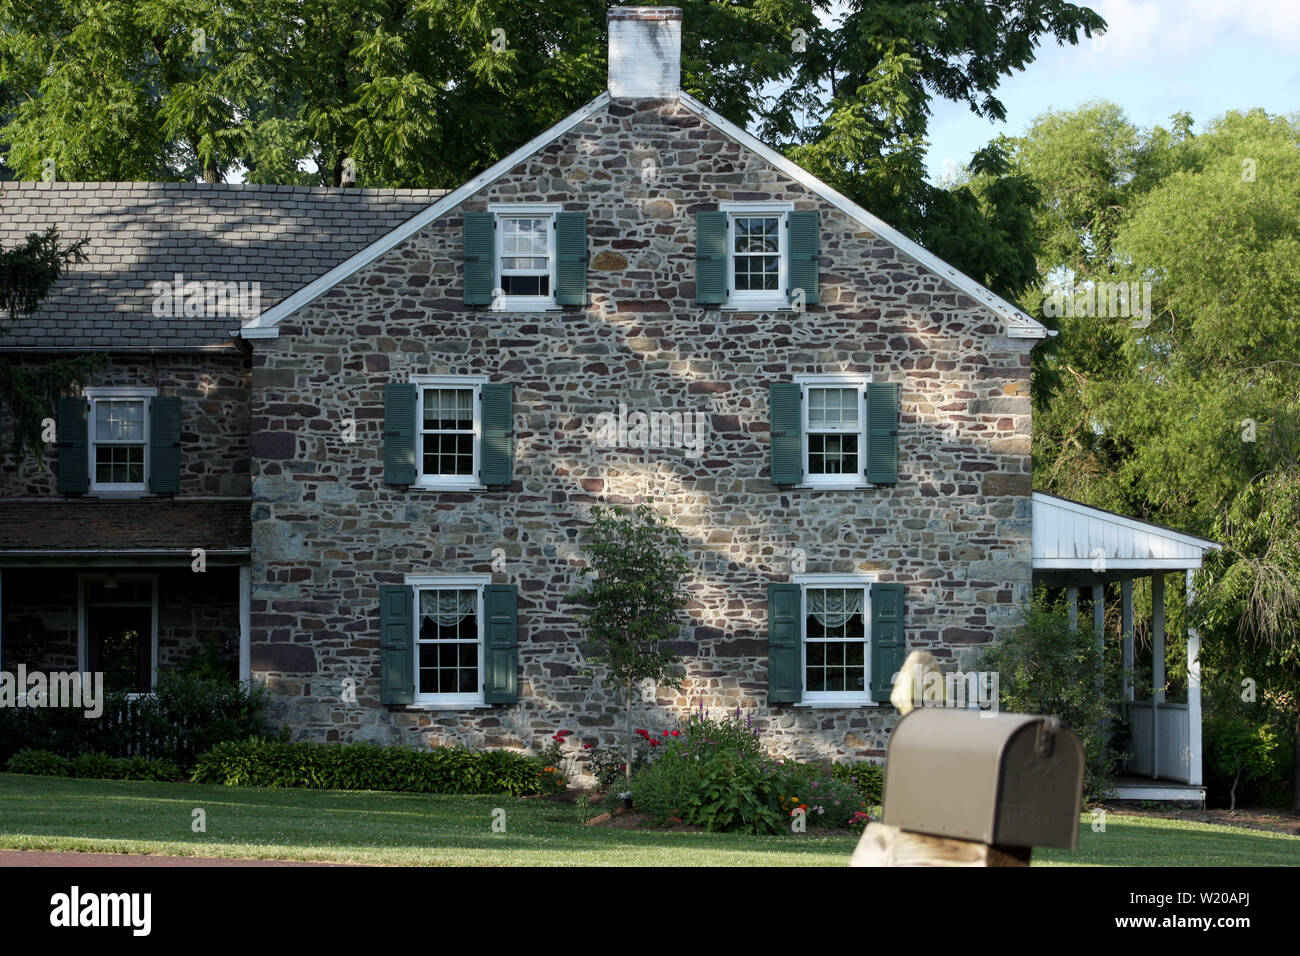 Large well-maintained stone house in Pennsylvania, PA, USA